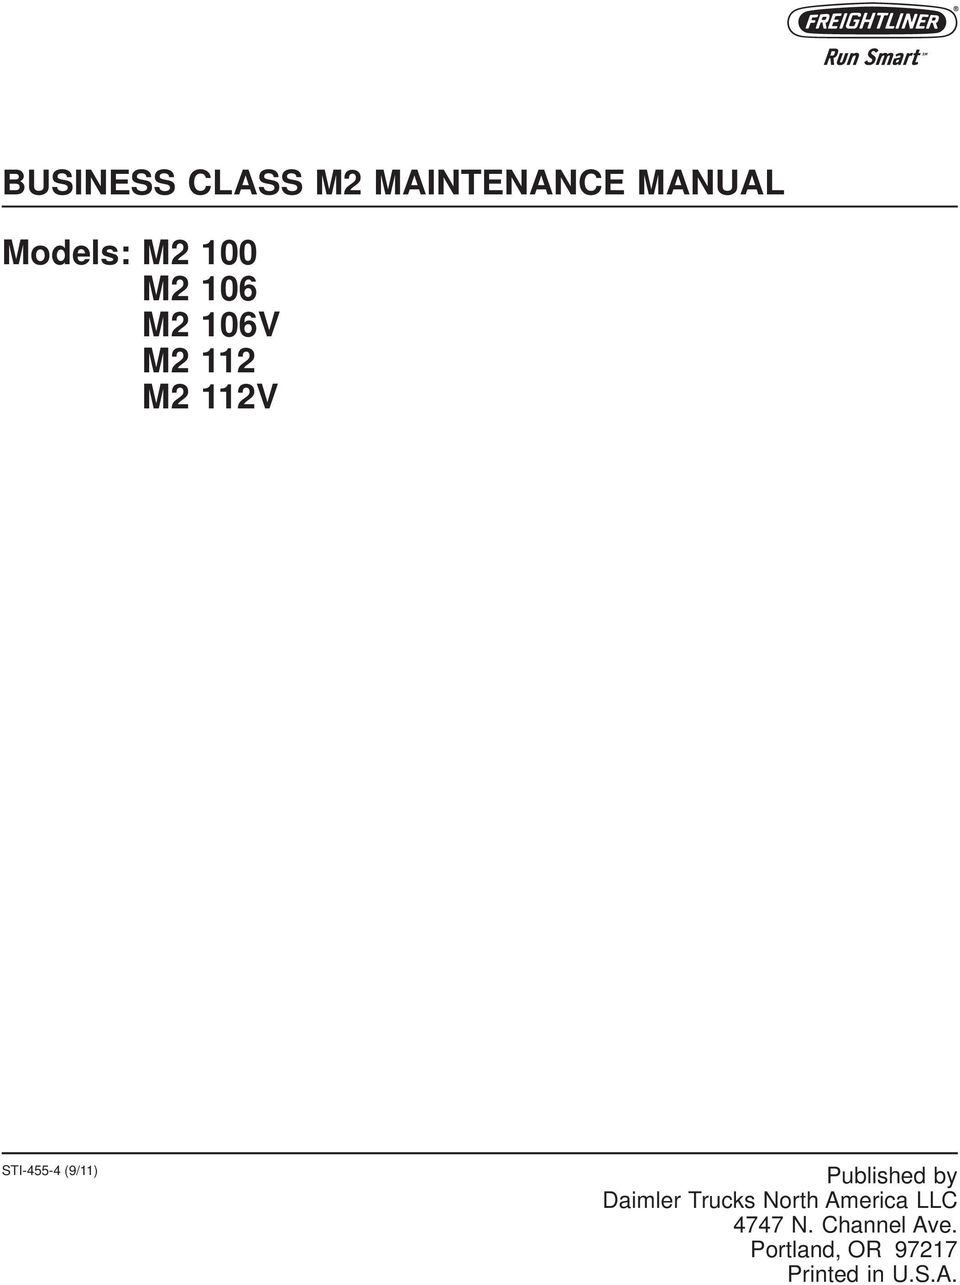 Freightliner M2 Electrical Diagram Pdf 208 Wiring Diagrams Hydrocollator Business Class Maintenance Manual